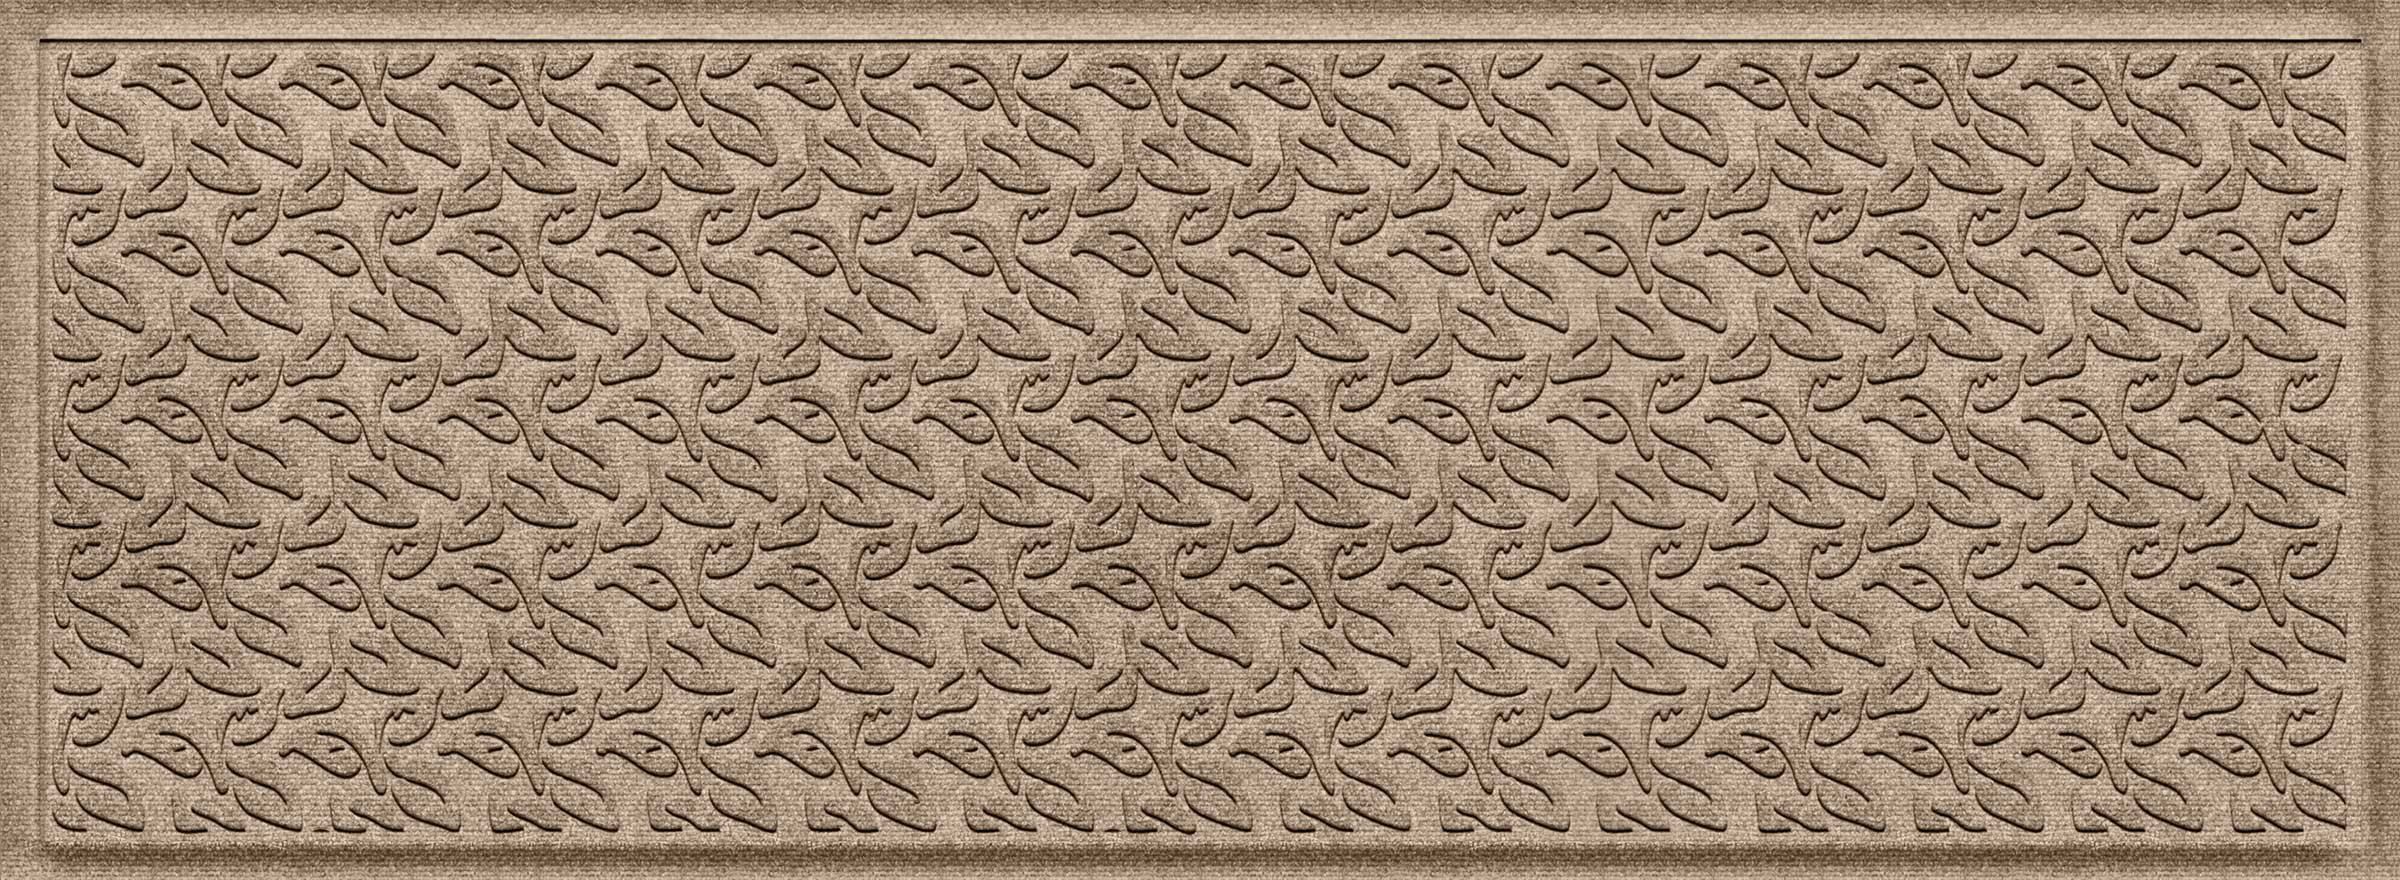 Bungalow Flooring Waterhog Indoor/Outdoor Runner Rug, 22'' x 60'', Skid Resistant, Easy to Clean, Catches Water and Debris, Dogwood Leaf Collection, Khaki/Camel